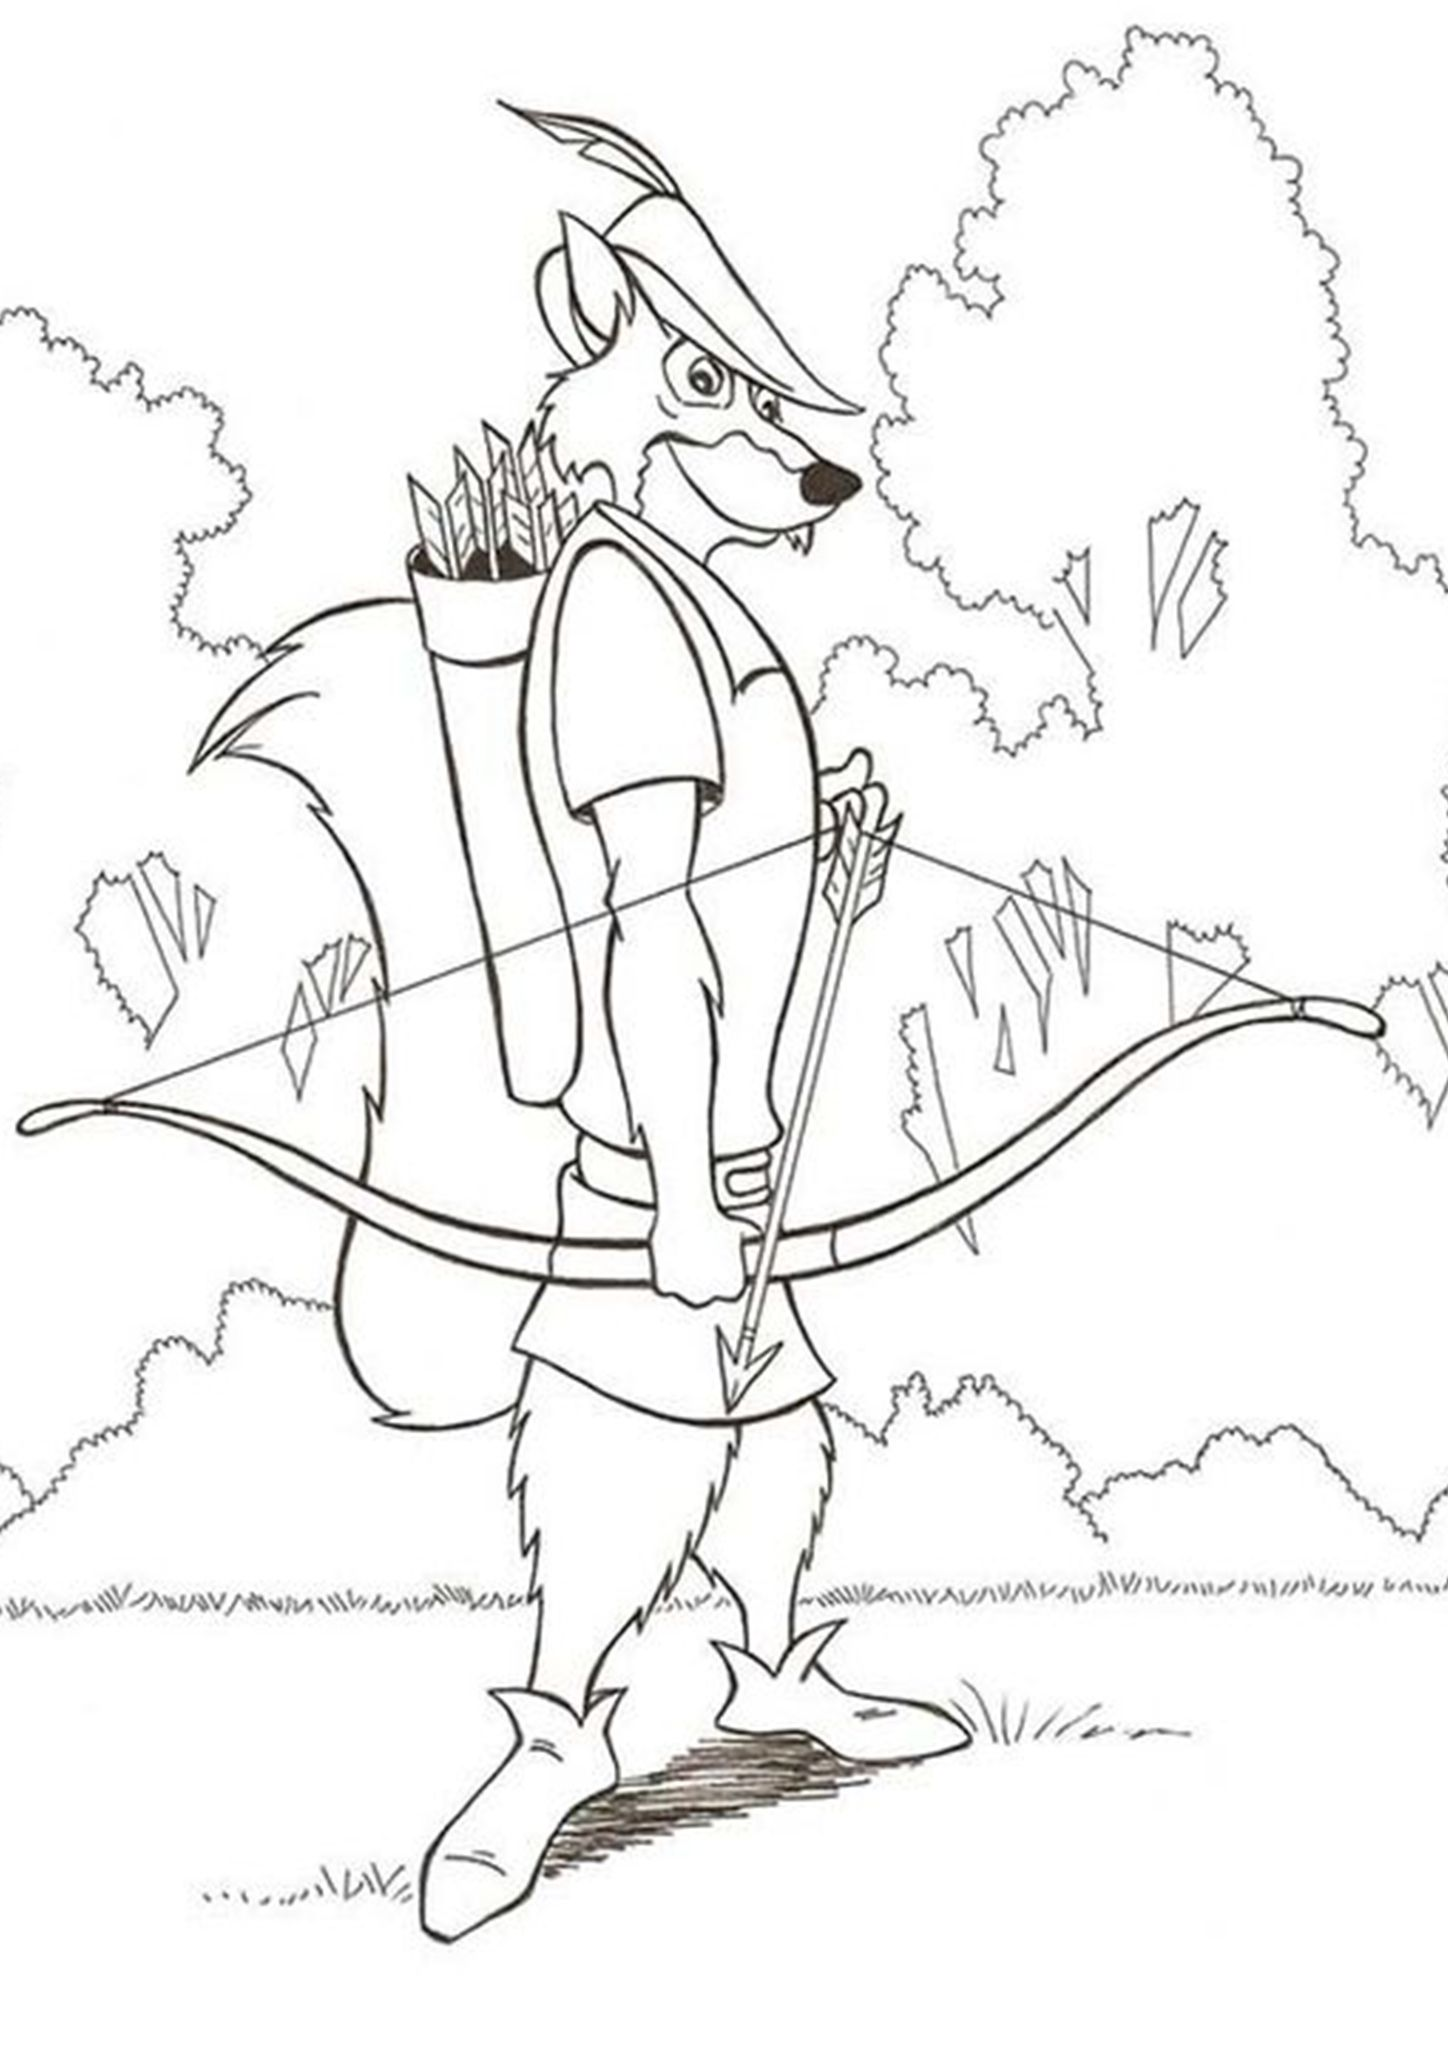 Free Easy To Print Fox Coloring Pages Fox Coloring Page Disney Coloring Pages Dinosaur Coloring Pages [ 2048 x 1448 Pixel ]